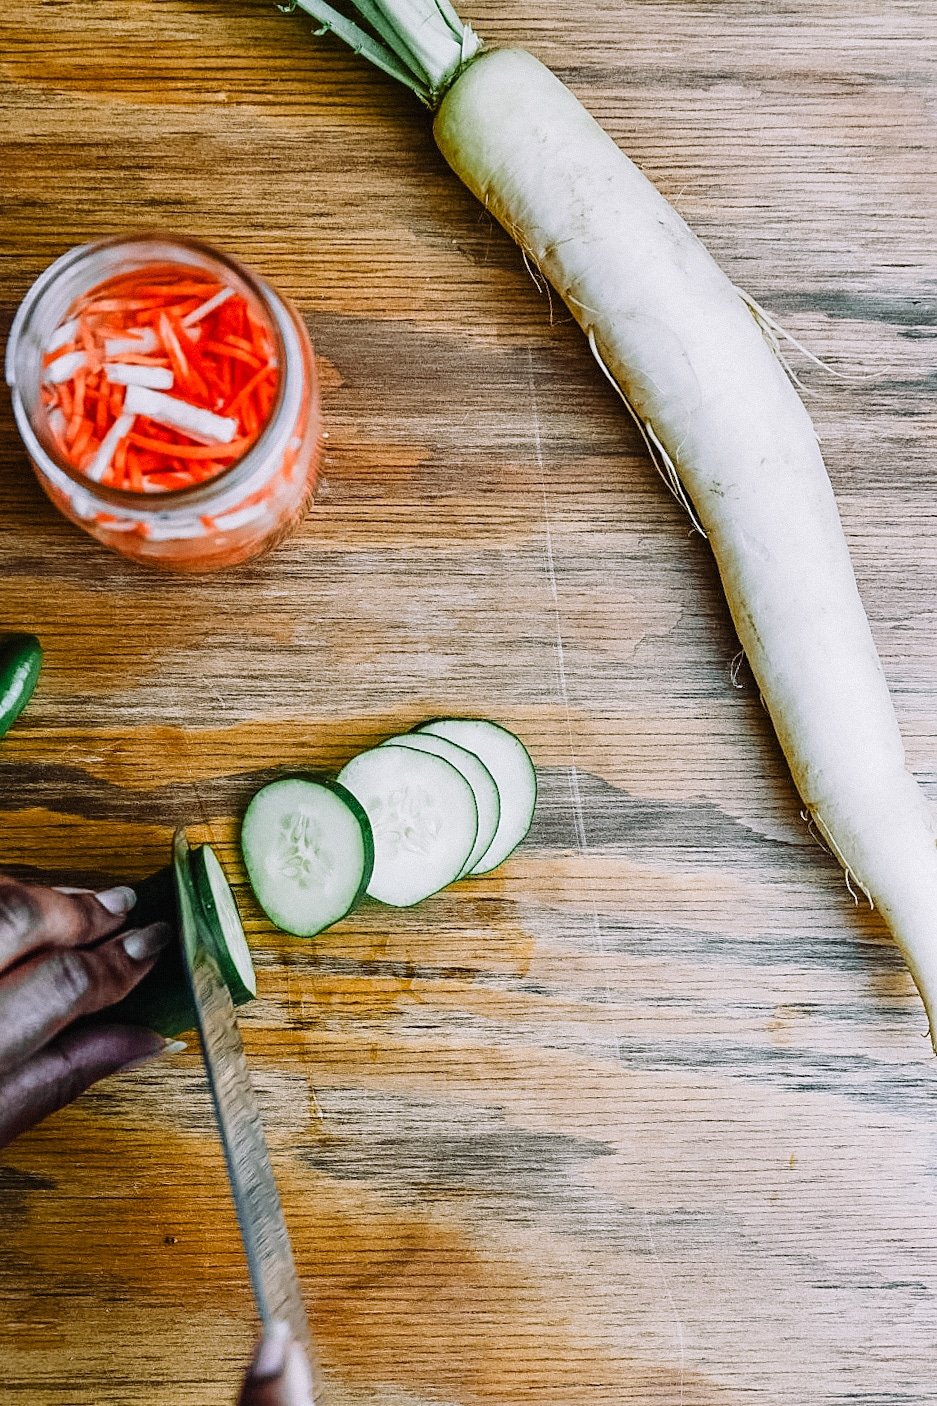 Chopping Cucumber for Shrimp Banh Mi Bowl made with Chipotle Ranch